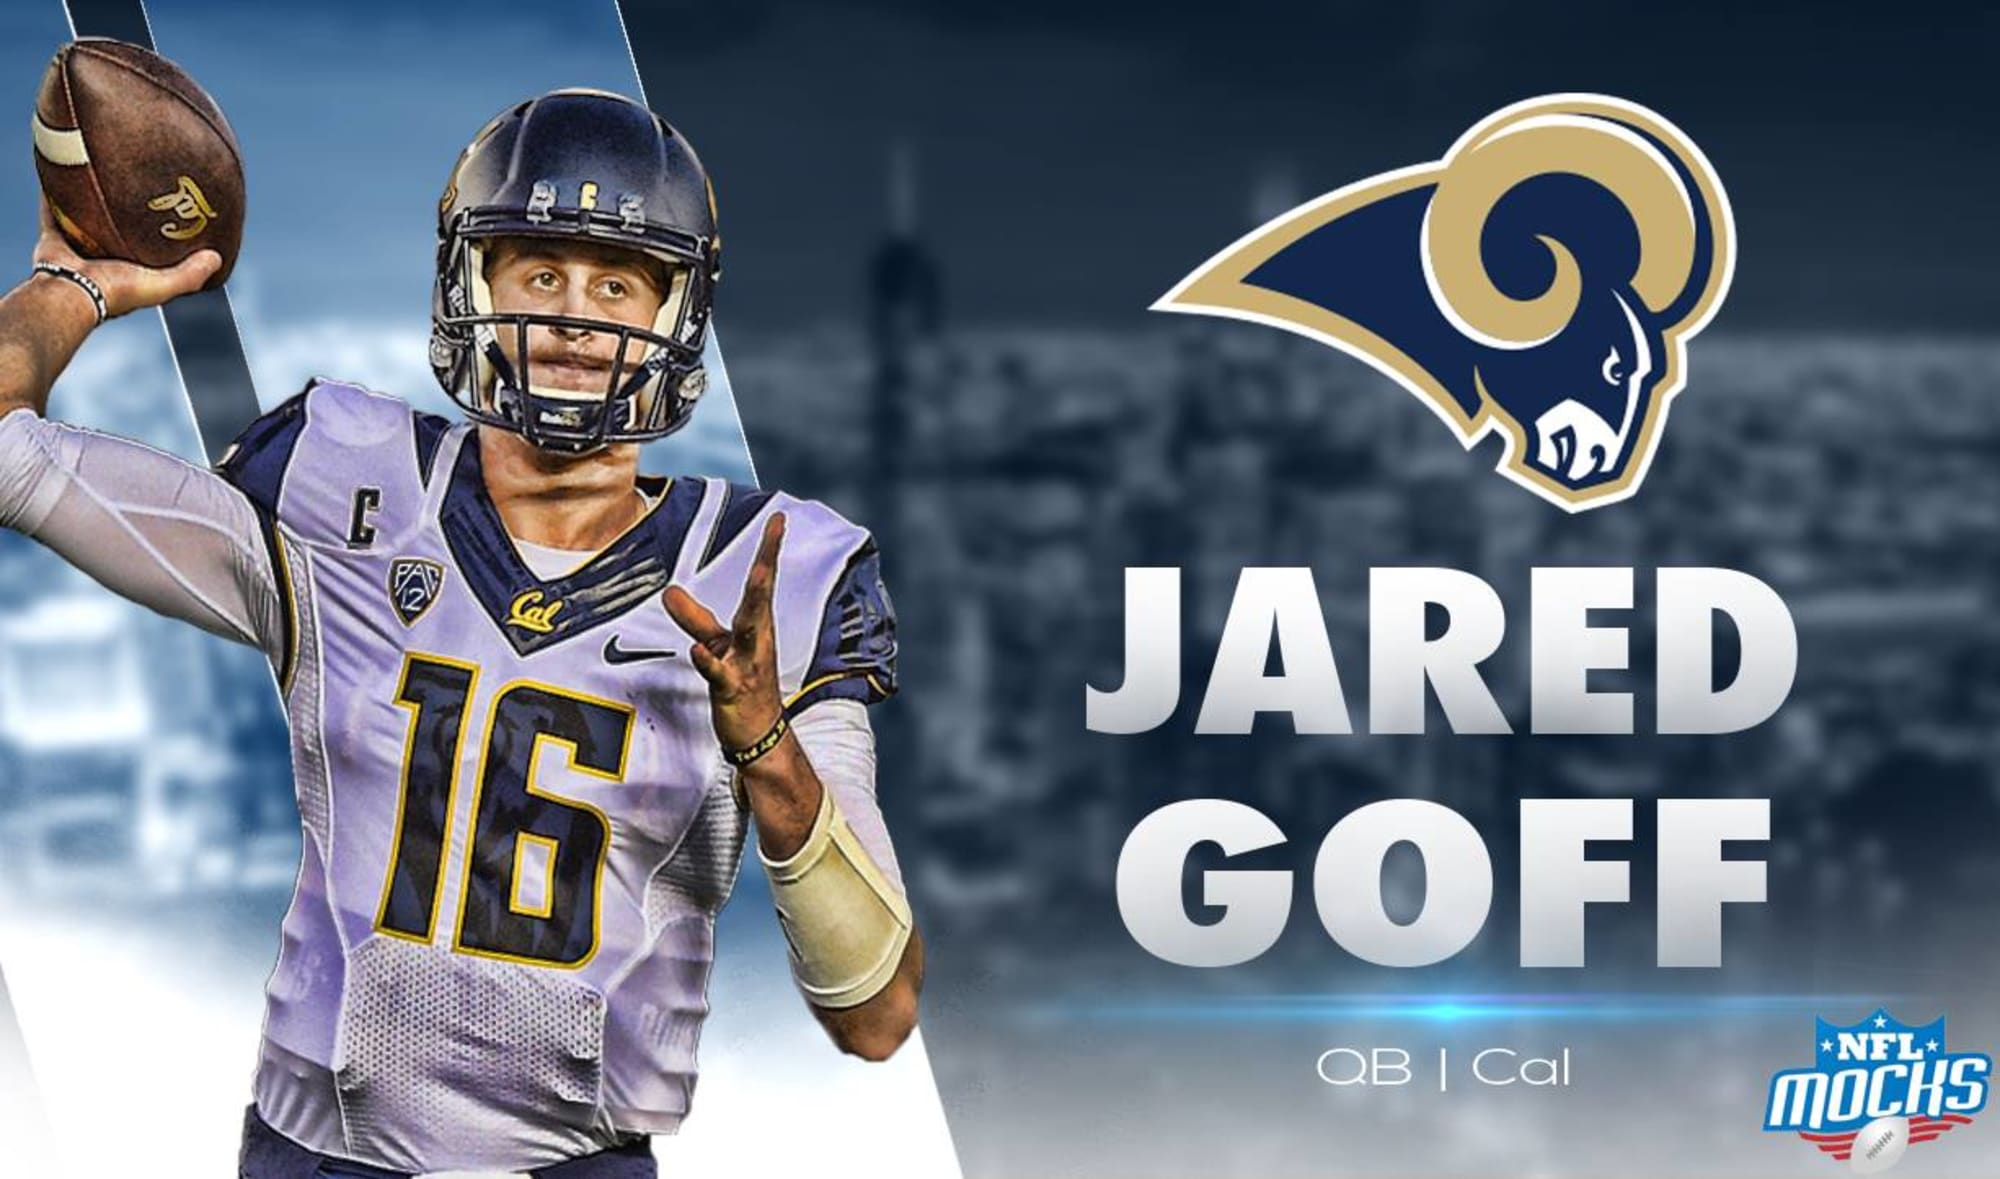 Los Angeles Rams Select Jared Goff With 1st Overall Pick